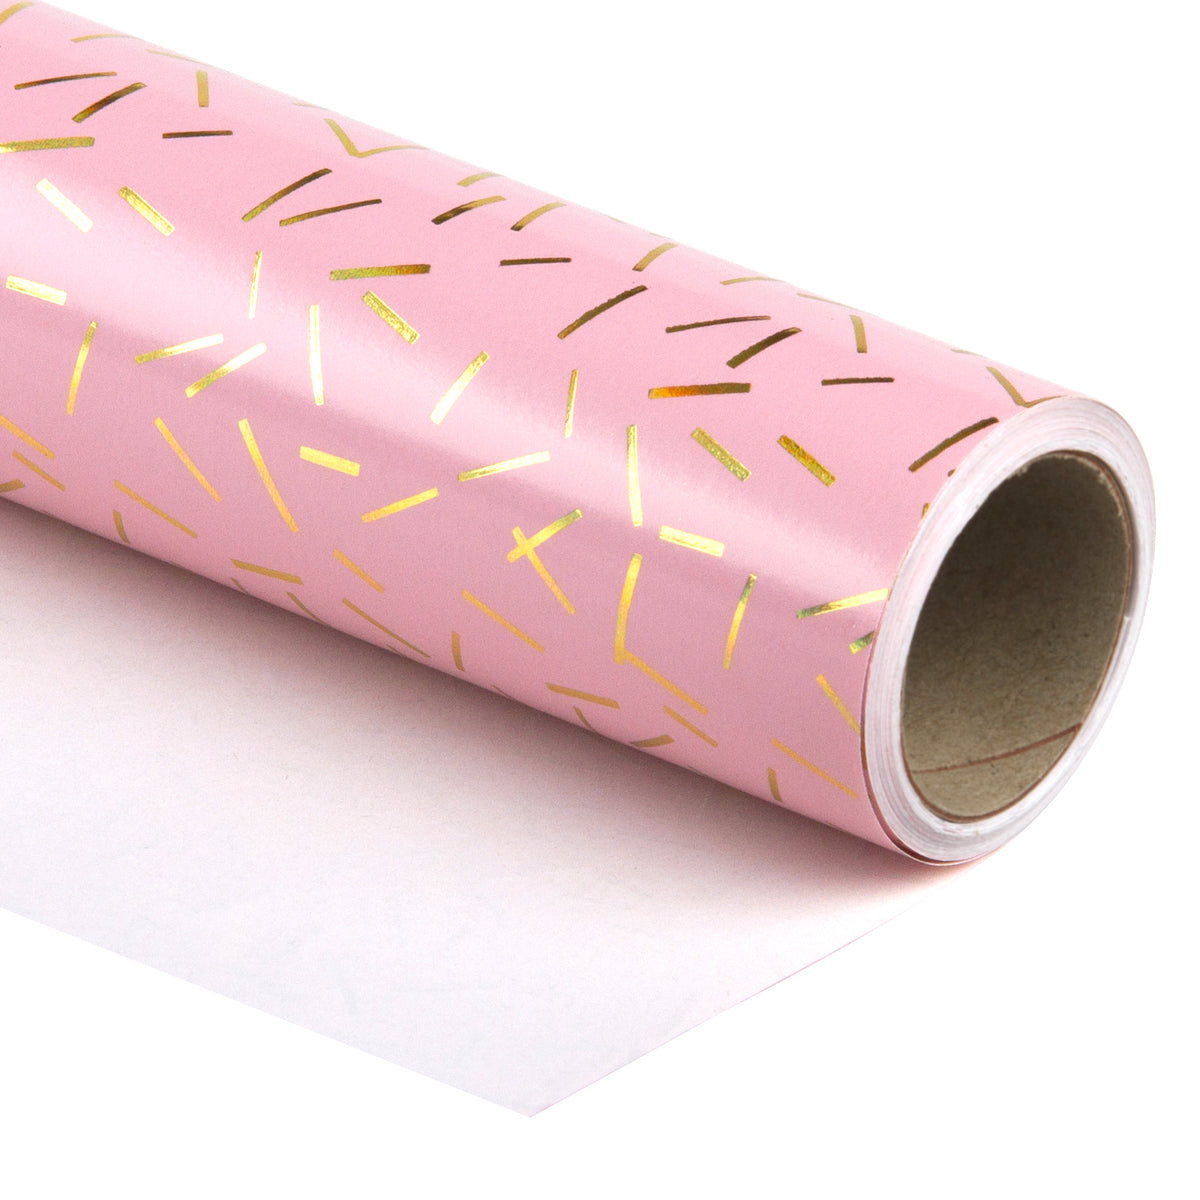 Wrapaholic-Pink-with-Gold Foil-Design- Gift-Wrapping-Paper-Roll-1